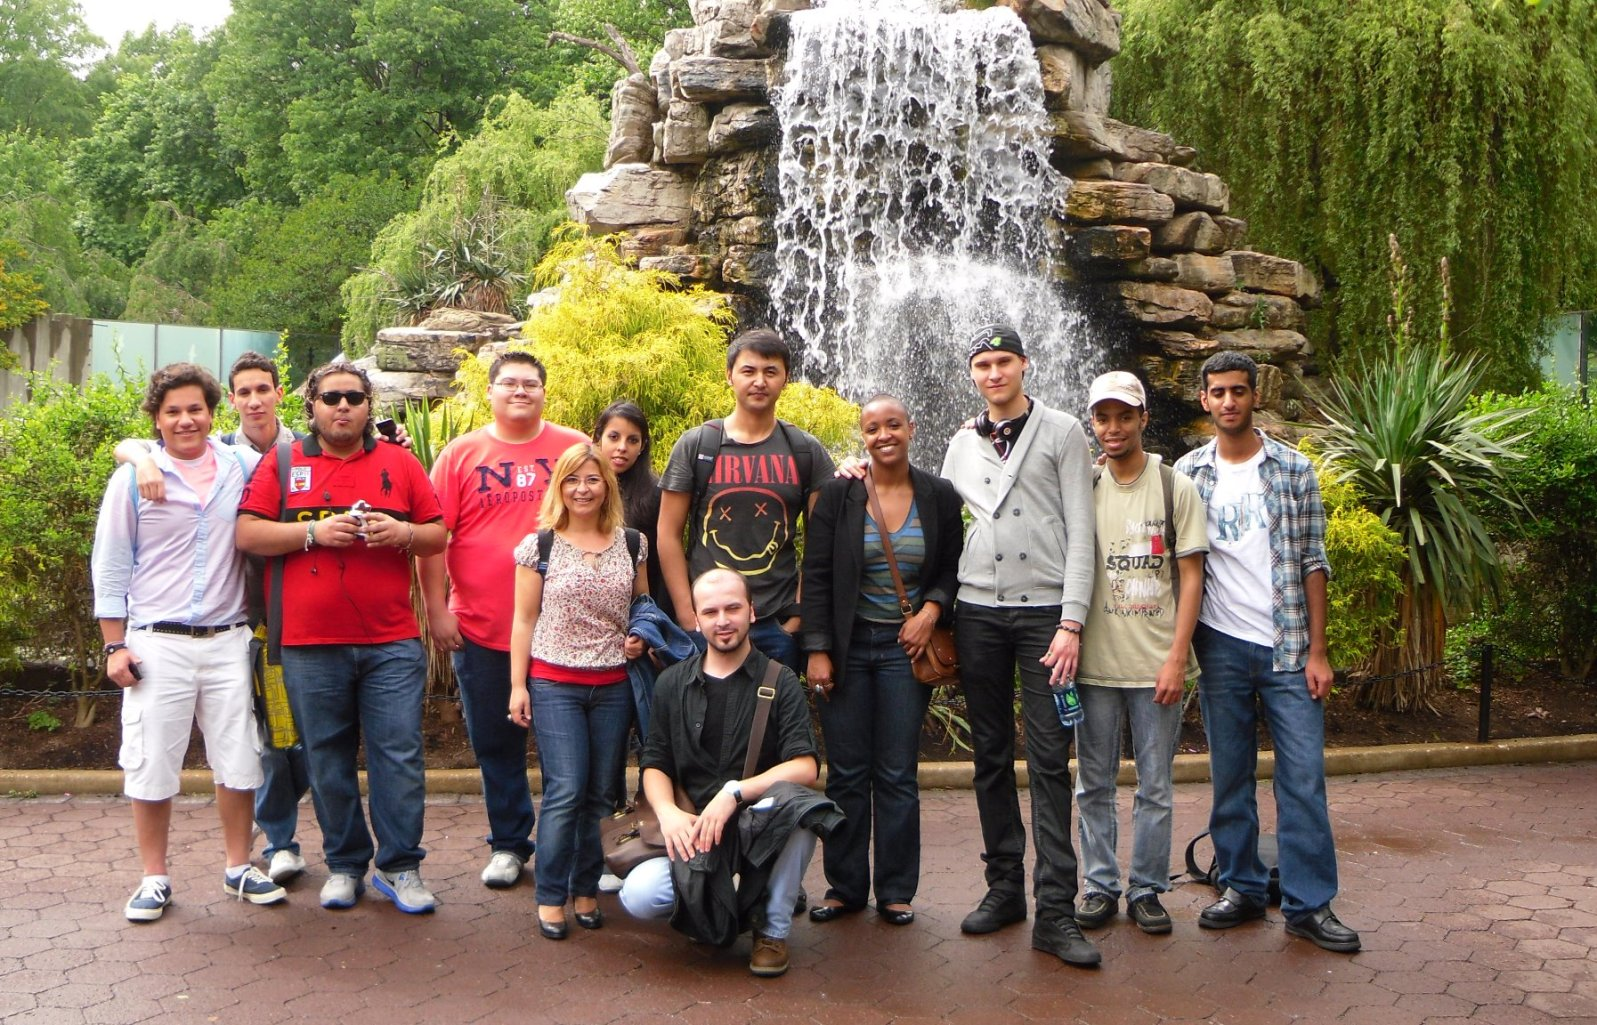 After English classes in Washington DC, visit the National Zoo